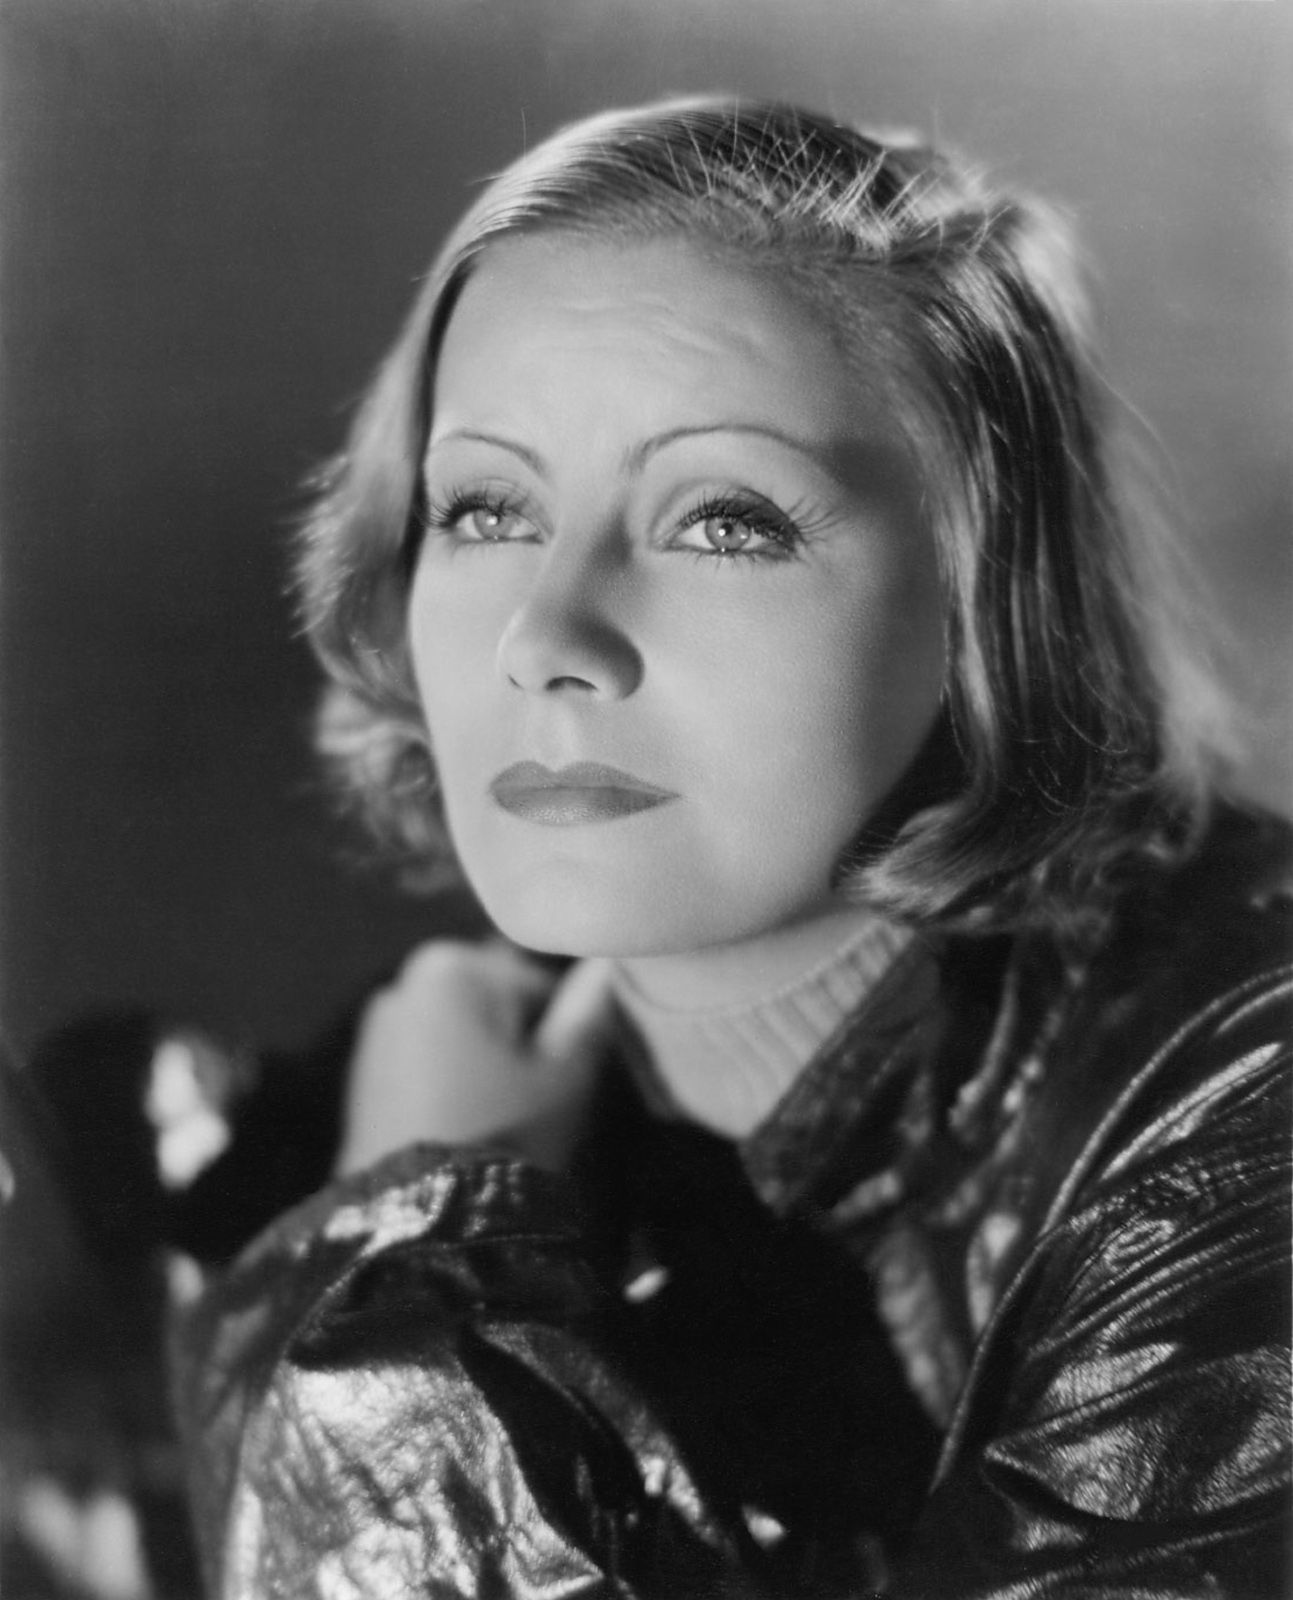 File:A-young-Greta-Garbo-in-Gösta-Berling's-